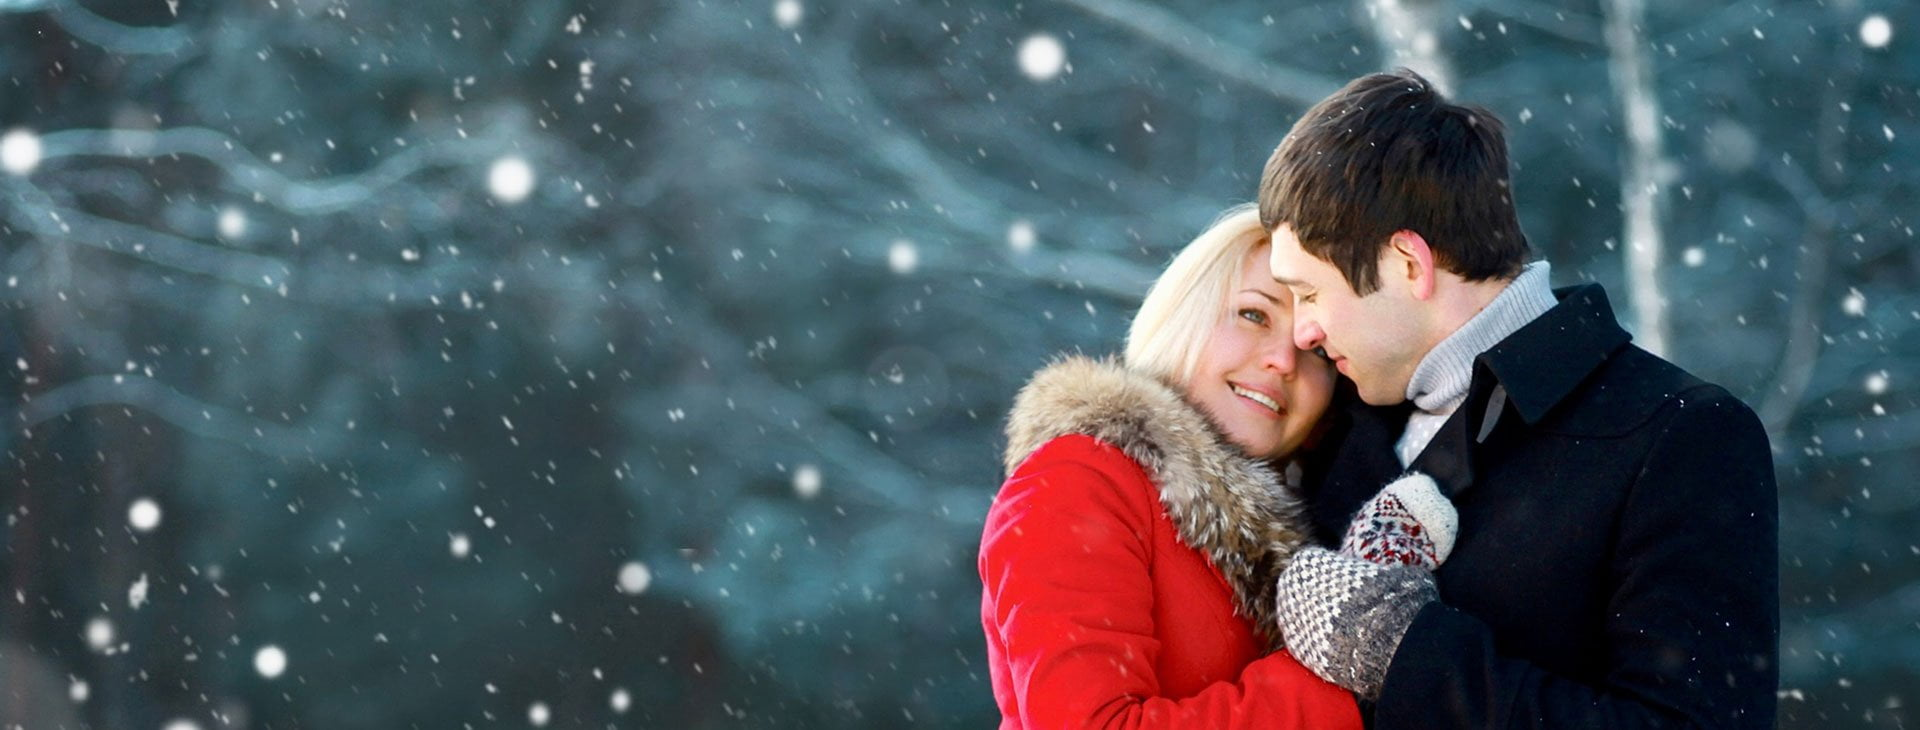 Couple in the snow using Sunsafe Rx sunscreen pills